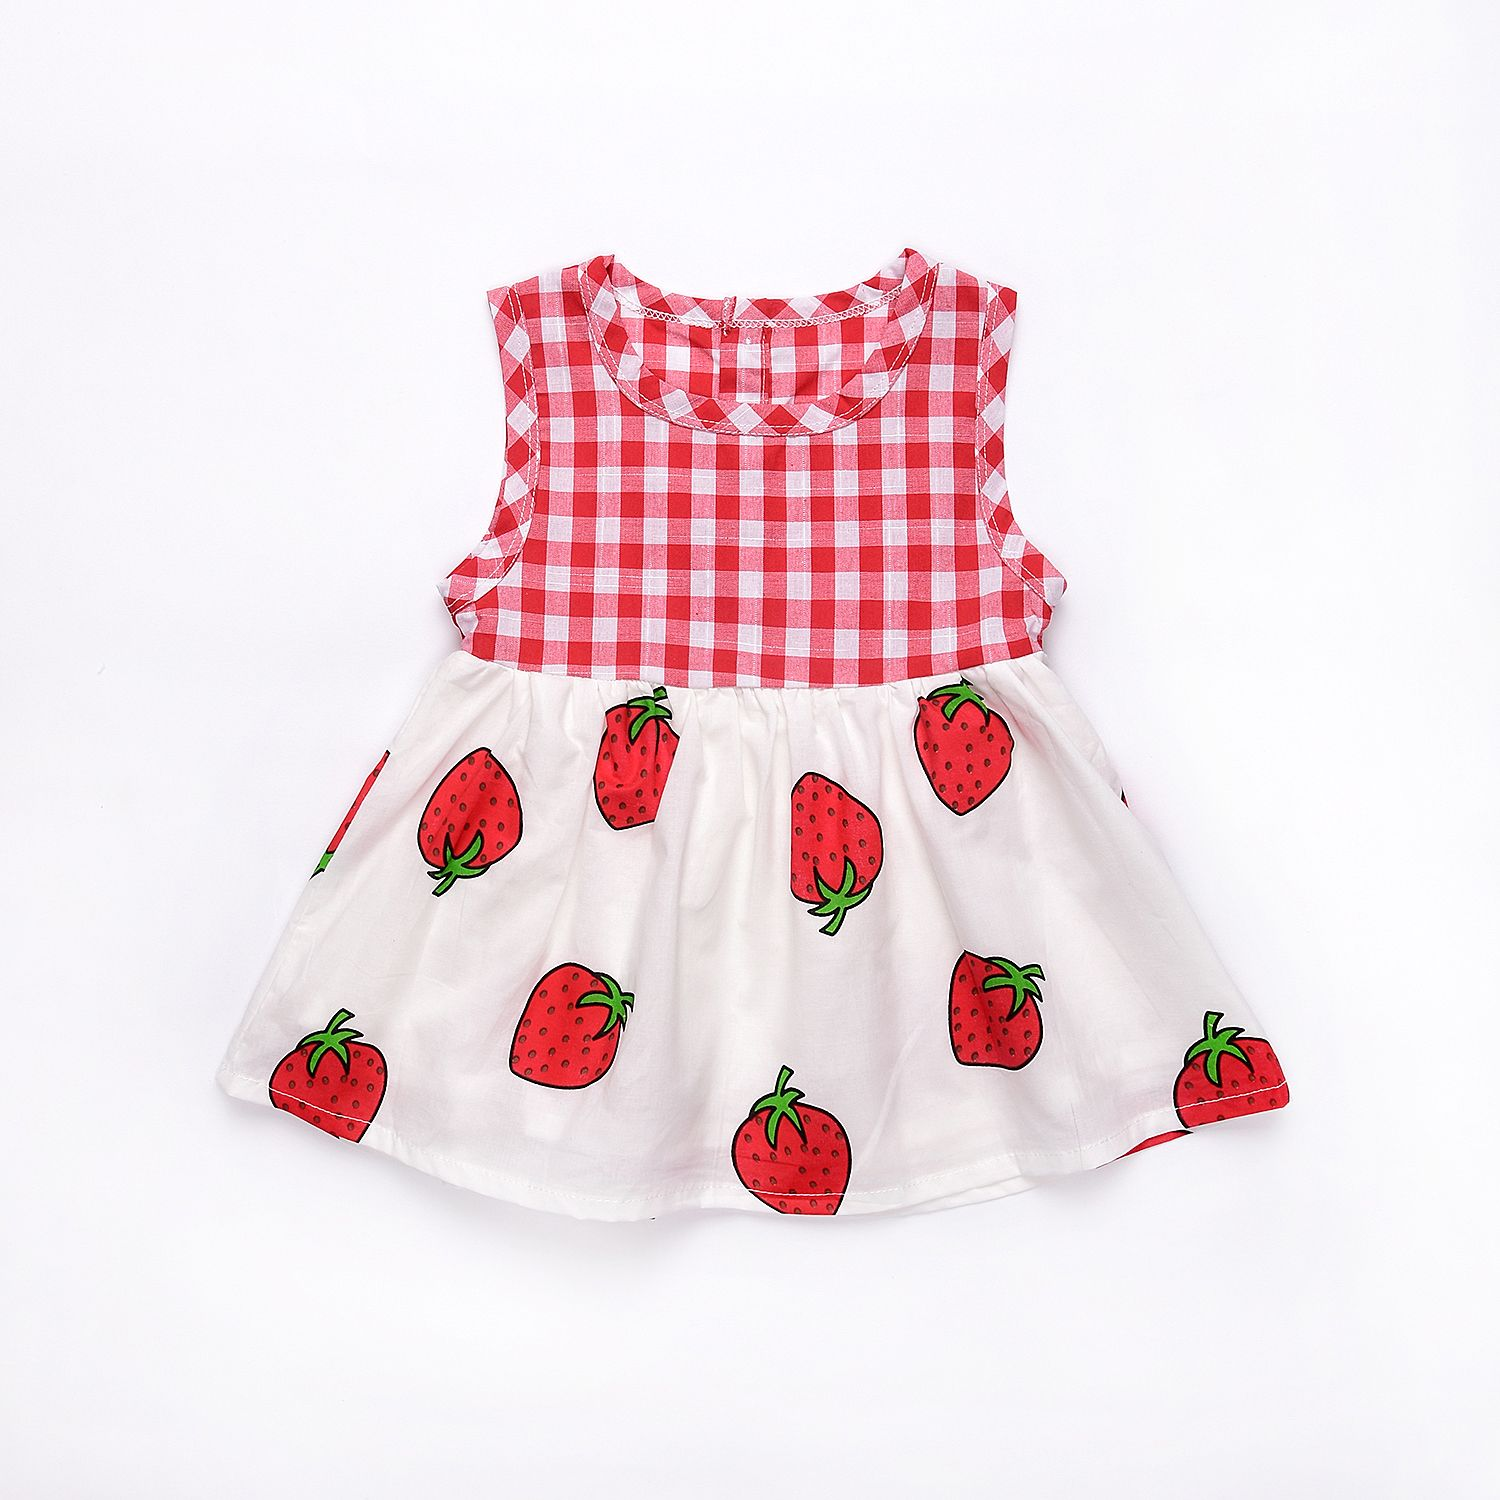 0bf6ba804 Mikrdoo Newborn Summer Baby Girl Dress Plaid Sweet Strawberry Printed  Cotton Dresses Infant Kid's Birthday Gift Clothes Suit 0-2 Year